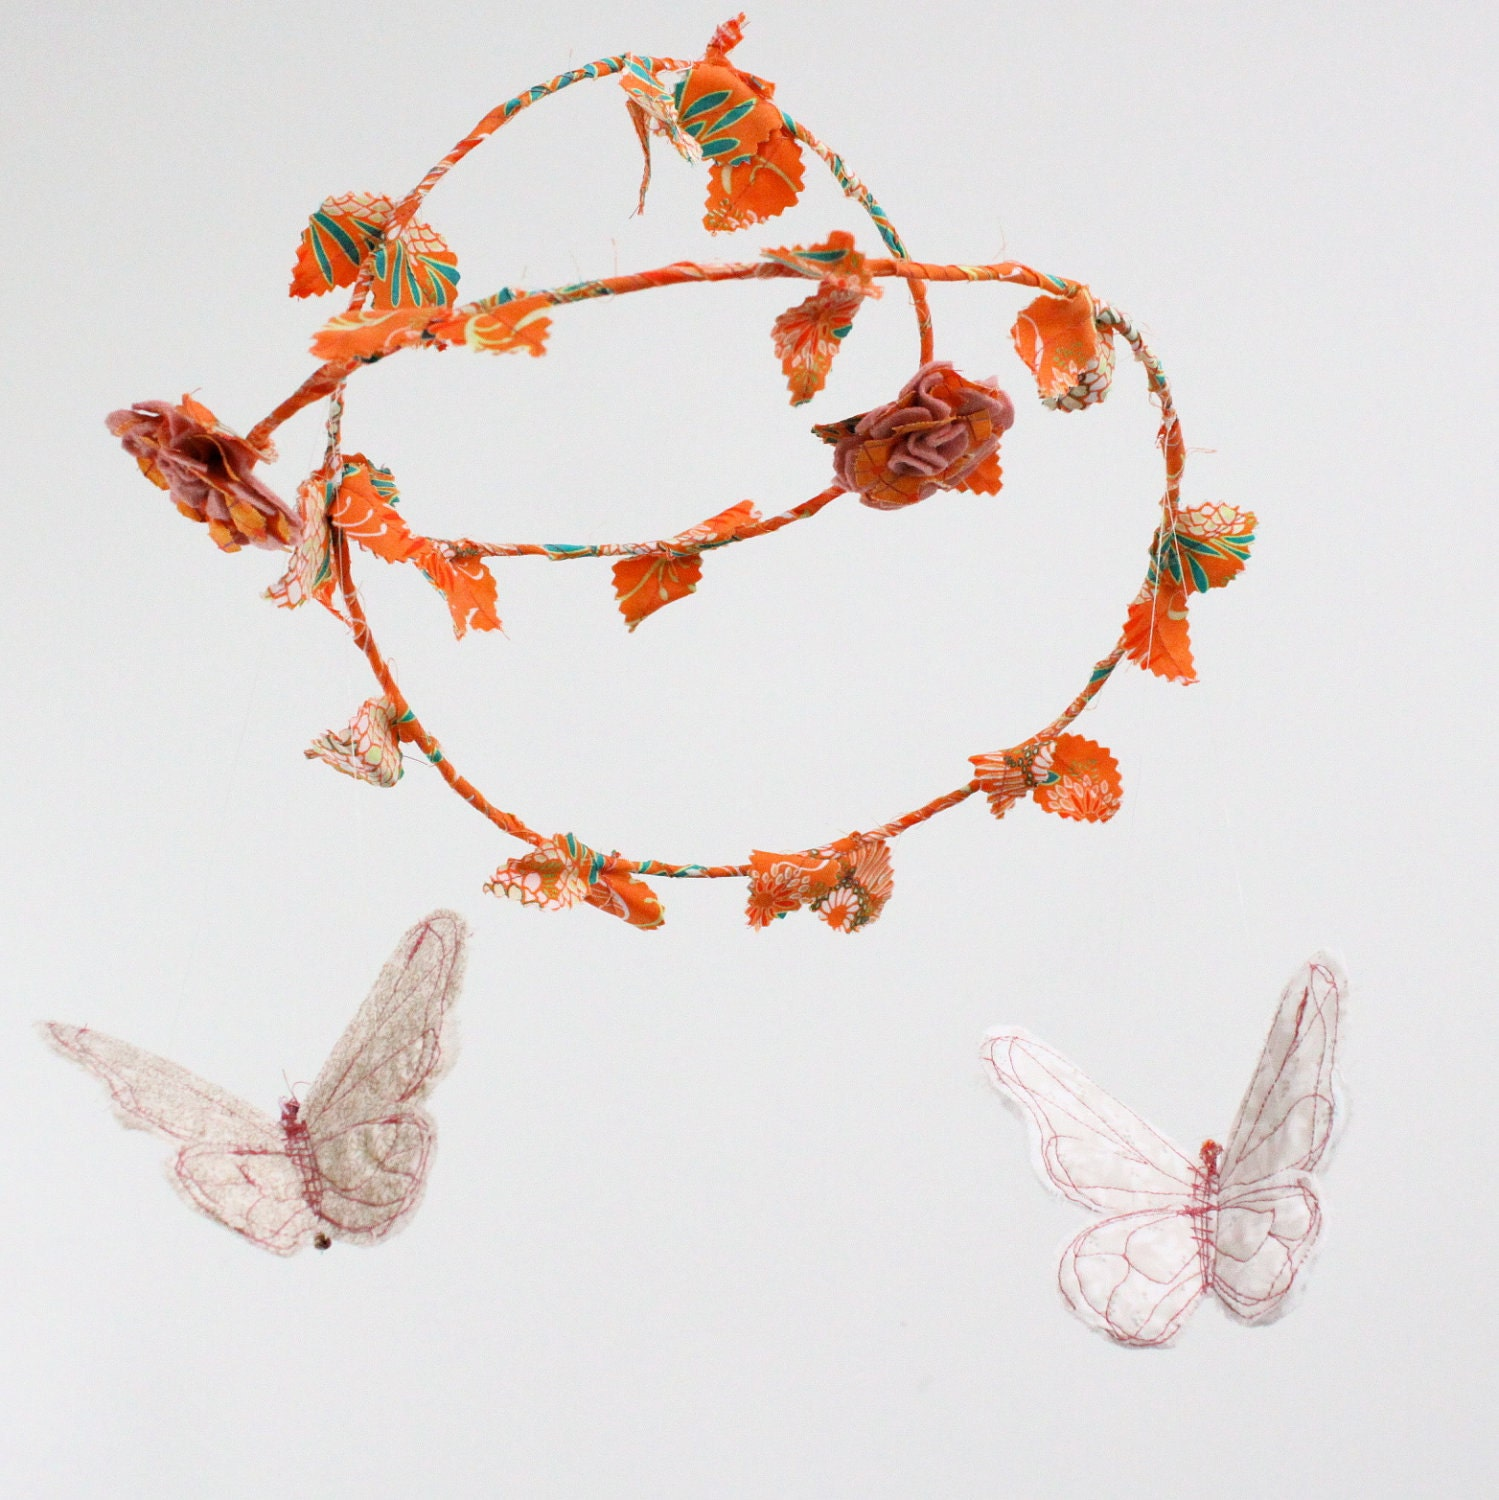 Butterfly Mobile - ballet in the garden - fabric in clementine orange, mango, cream, white, gold, dusty rose pink, and a touch of green